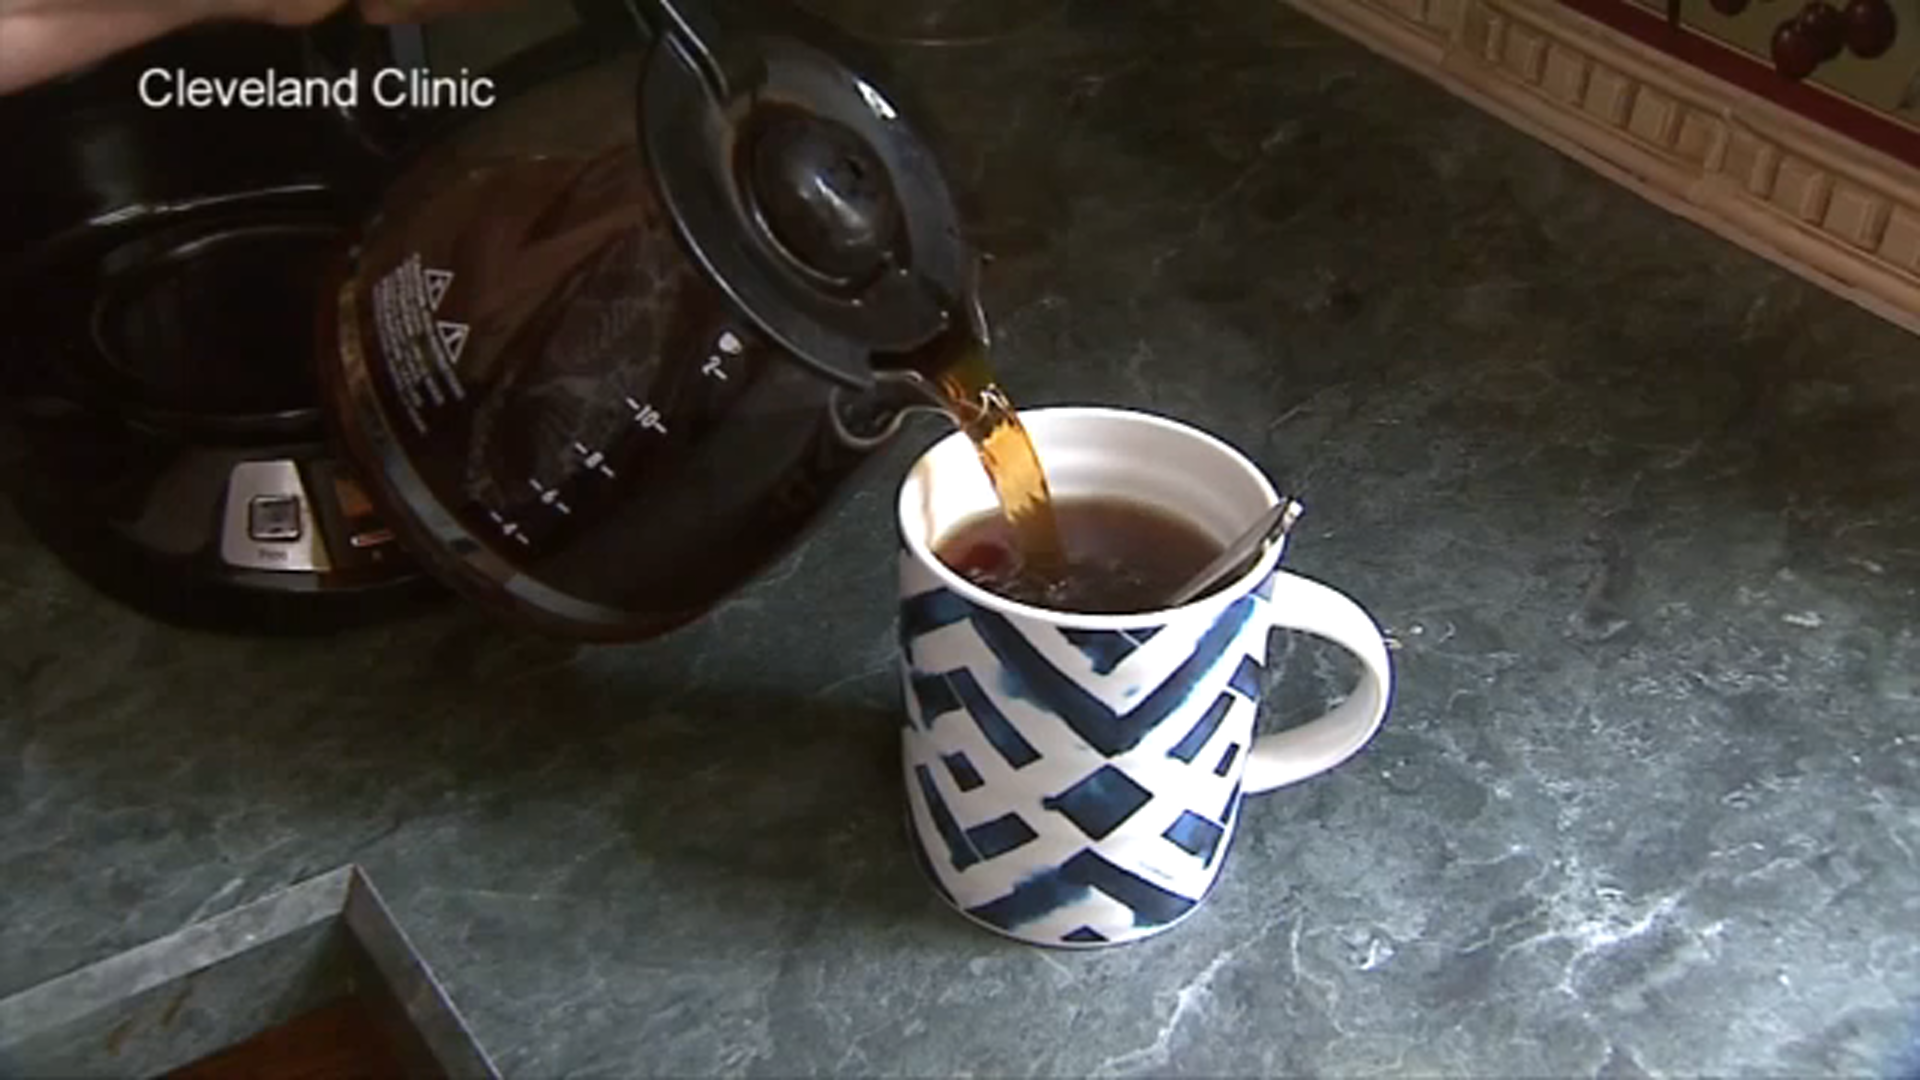 Coffee Slows Spread Of Colon Cancer Cleveland Clinic Researchers Say Abc13 Houston